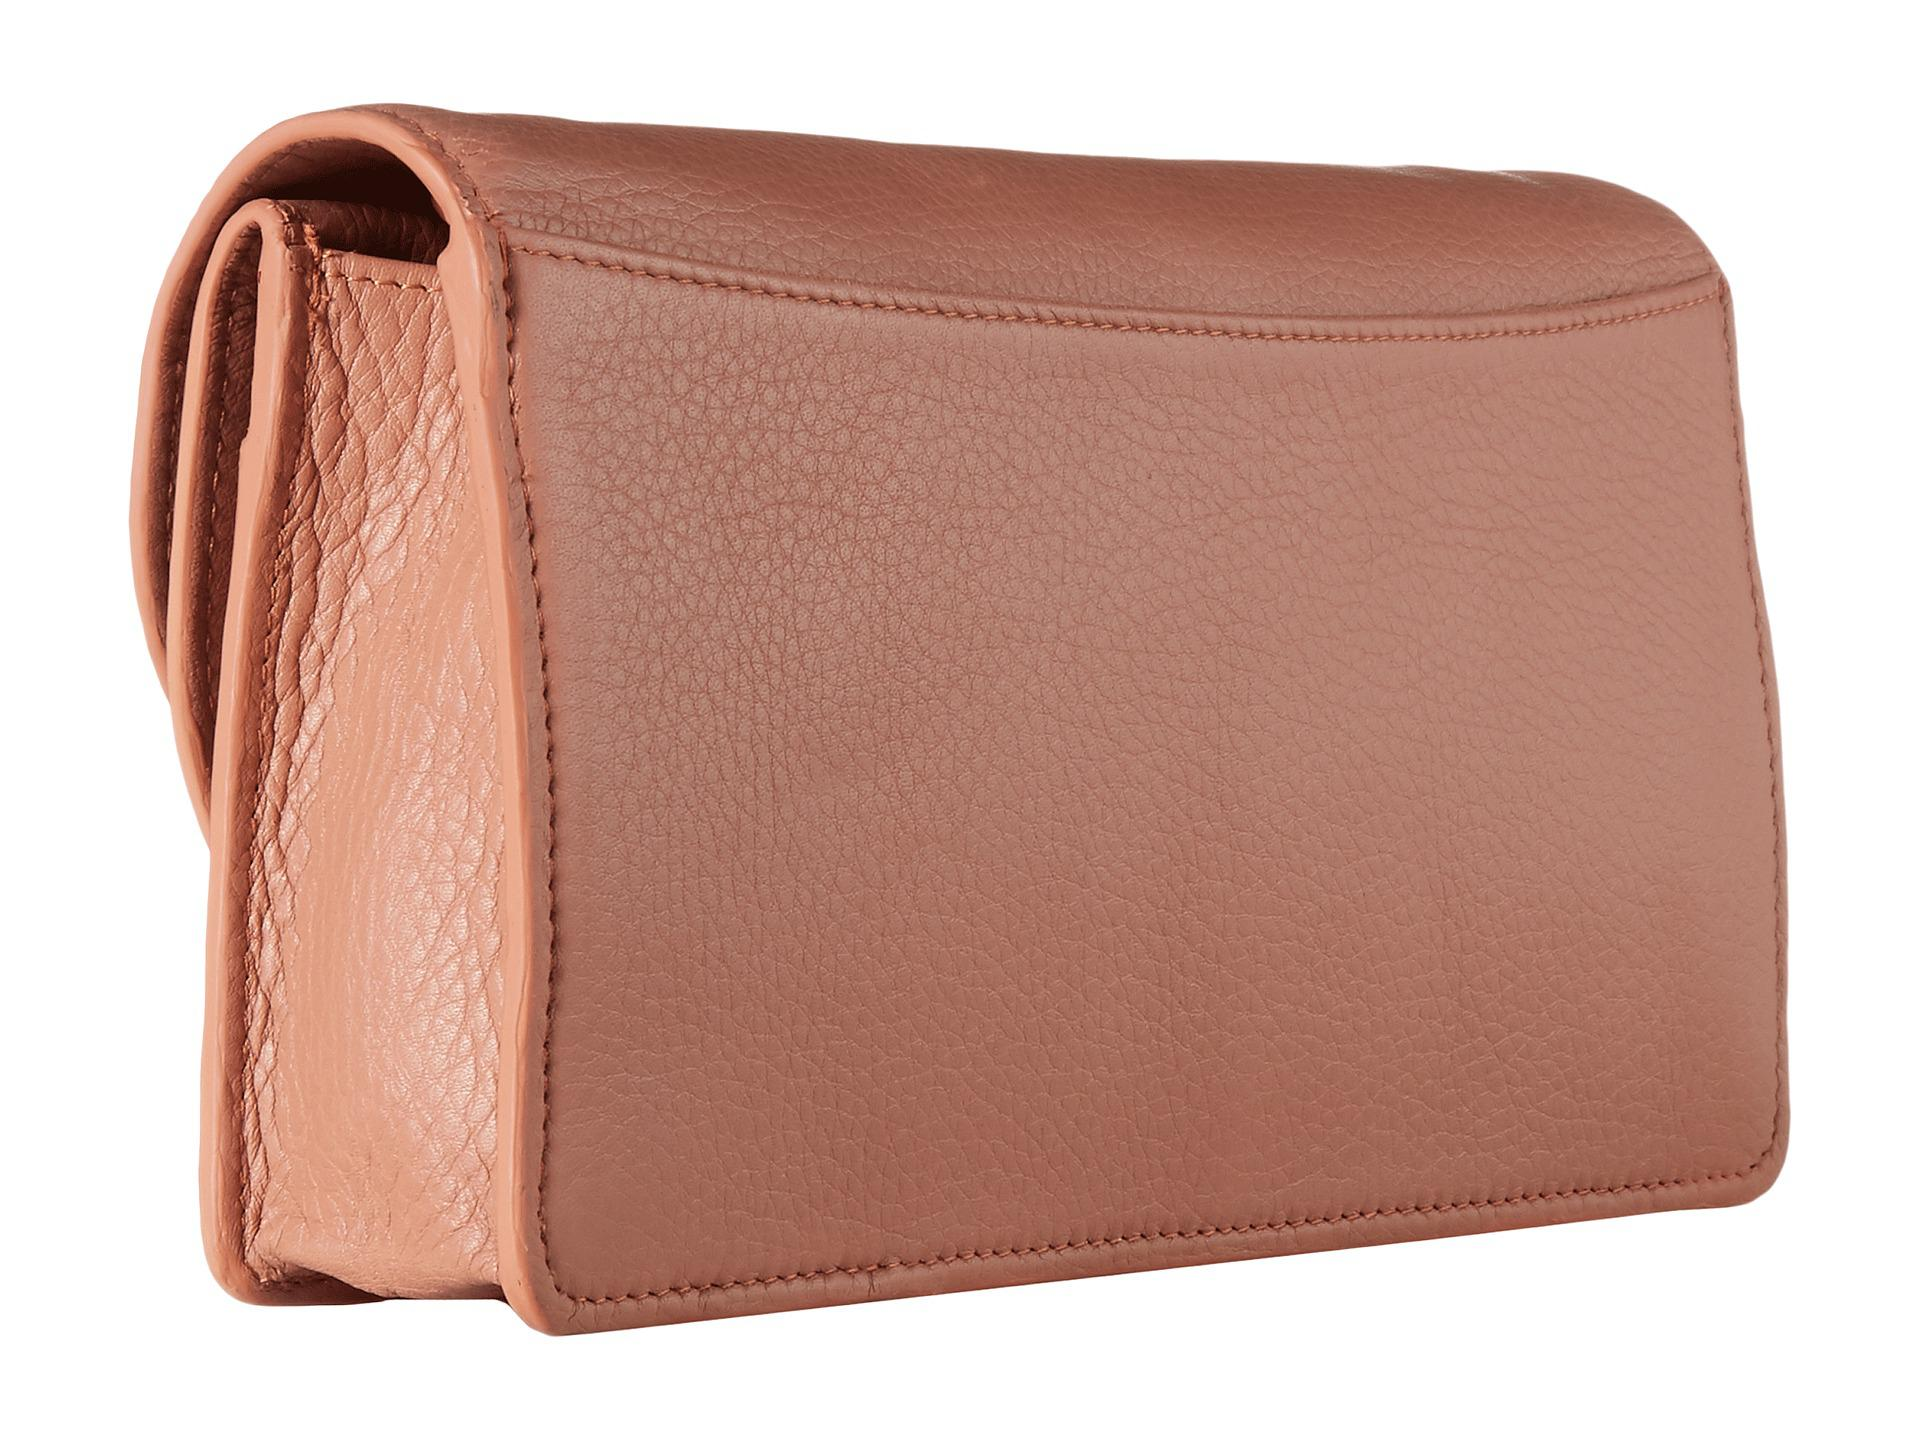 a7187dca02 Lyst - See By Chloé Polina Clutch With Chain